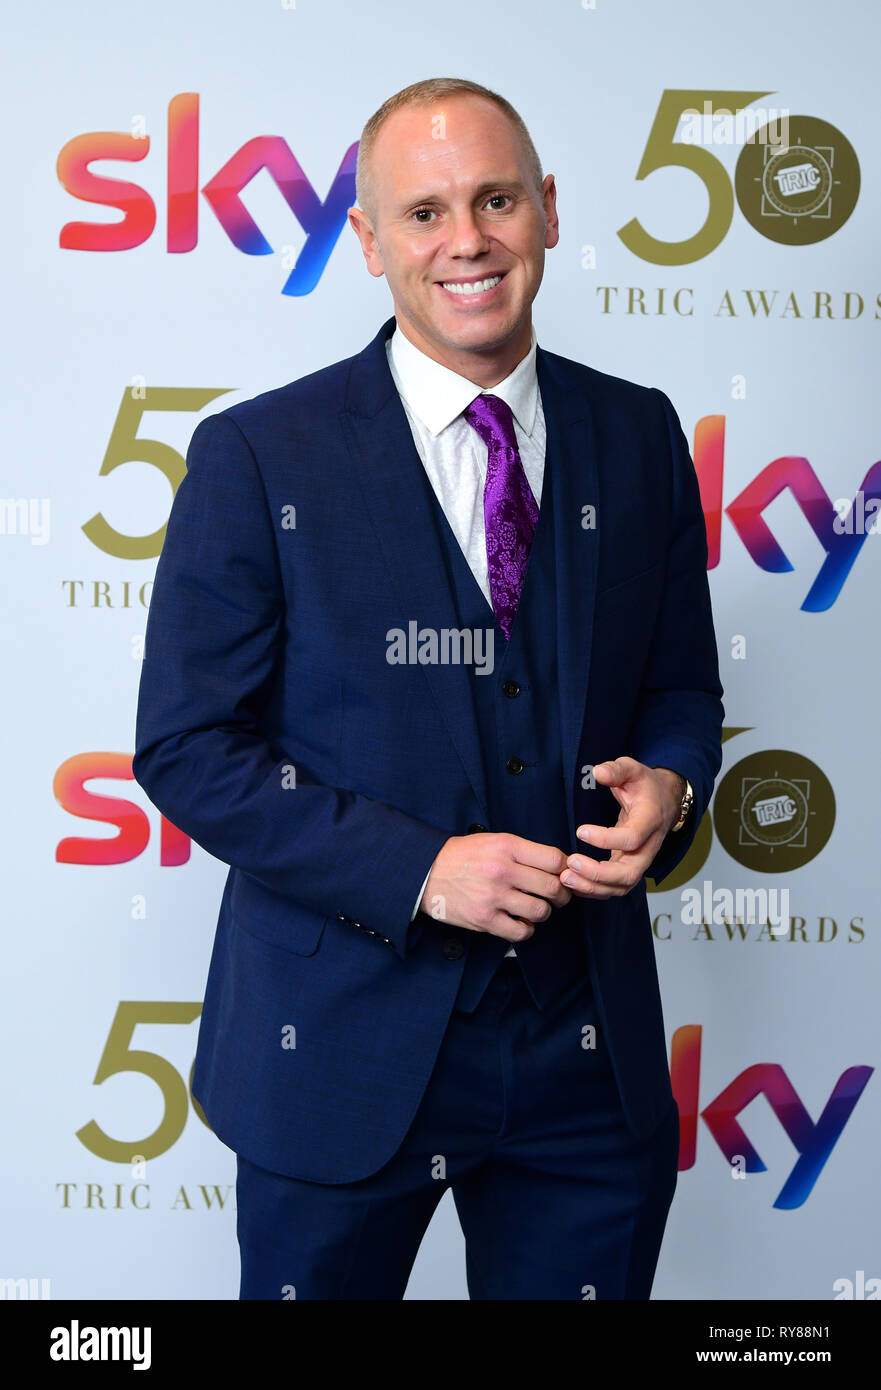 Judge Rinder attending the TRIC Awards 2019 50th Birthday Celebration held at the Grosvenor House Hotel, London. - Stock Image